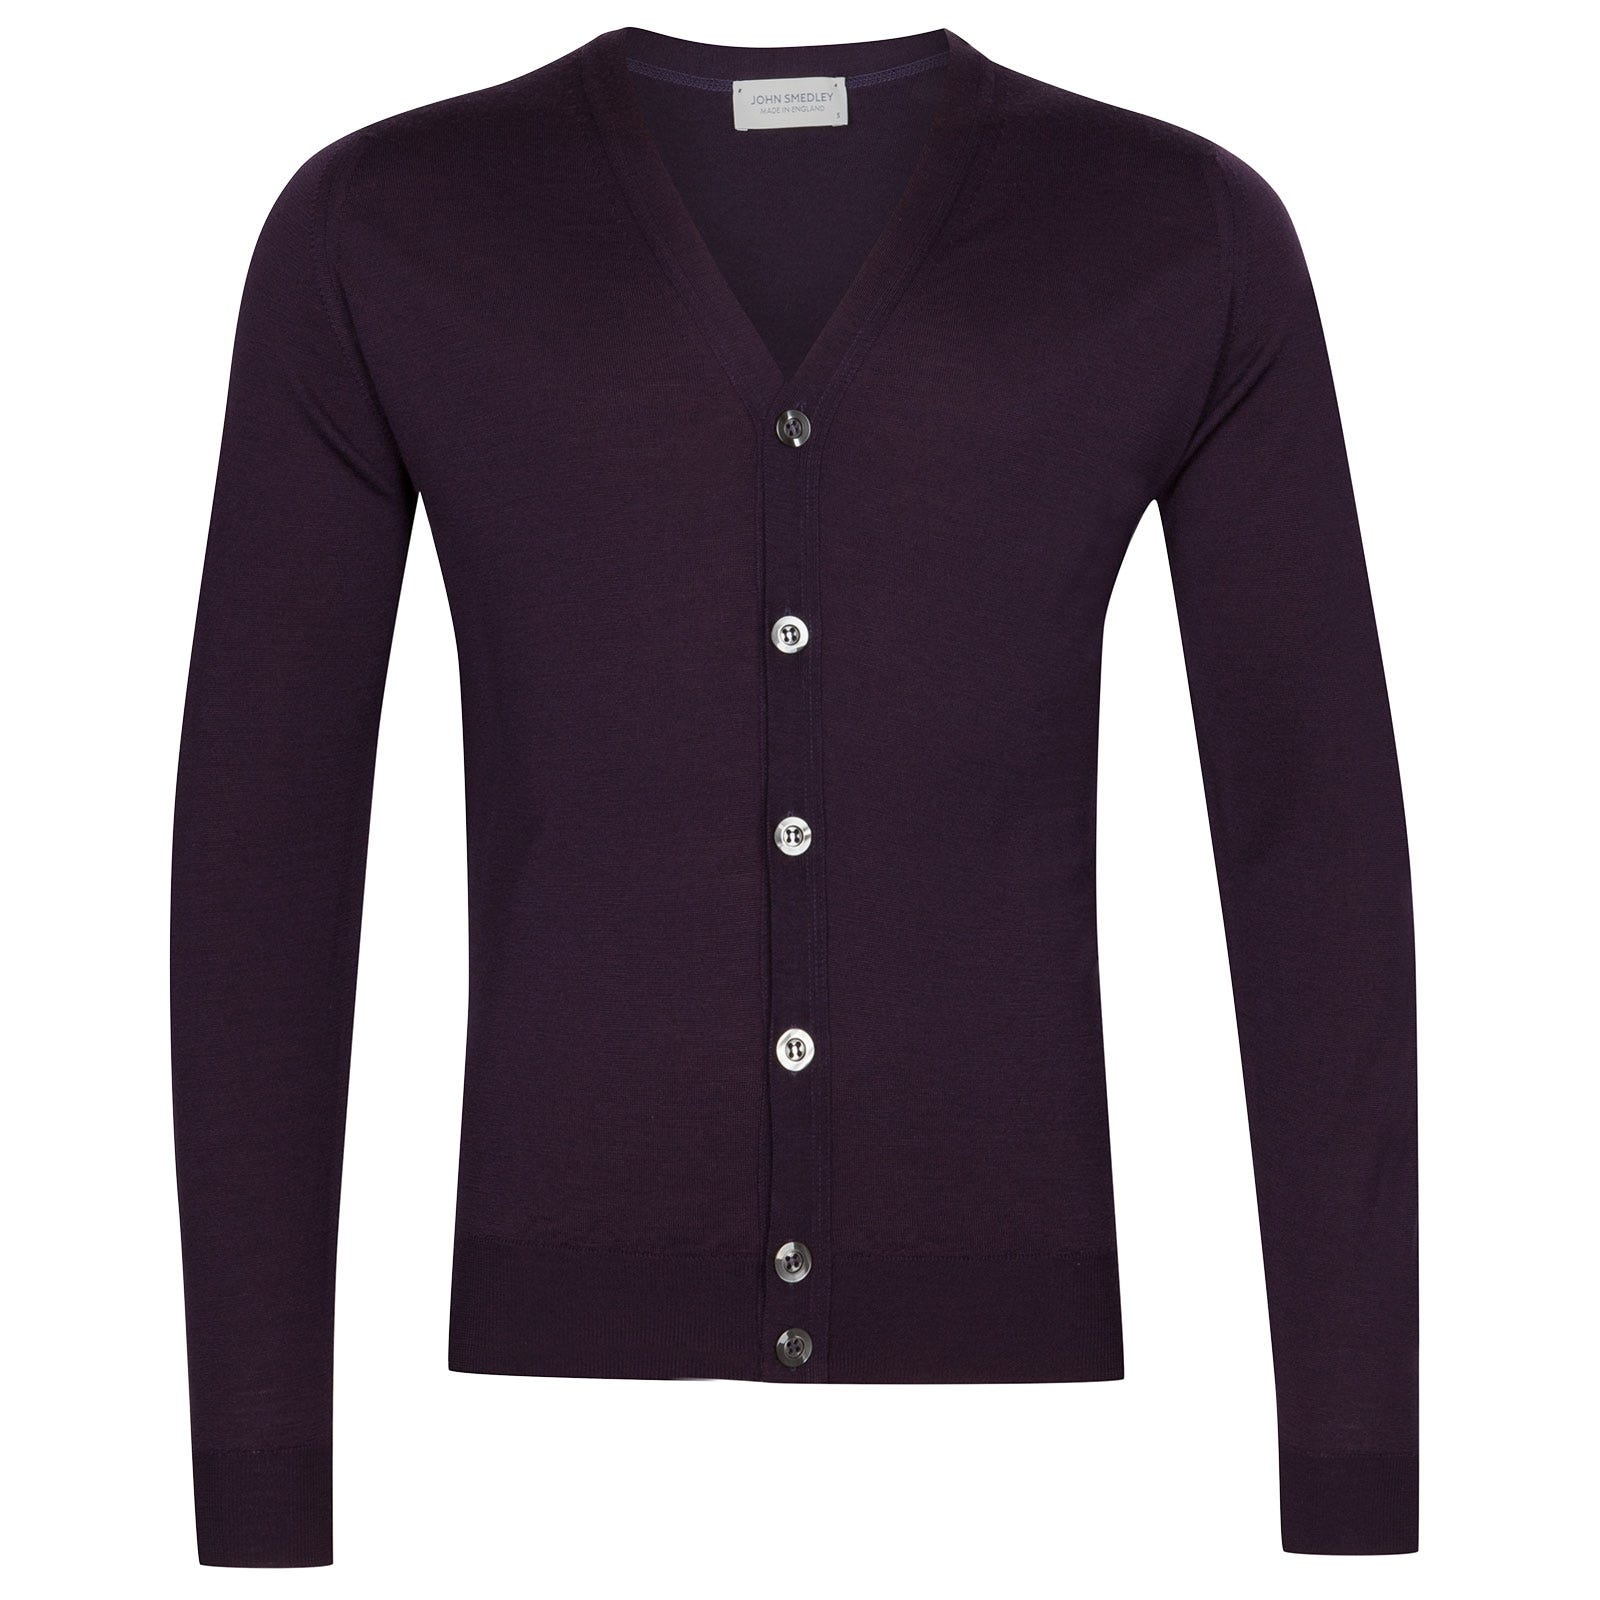 John Smedley Naples Merino Wool Cardigan in Mystic Purple-S